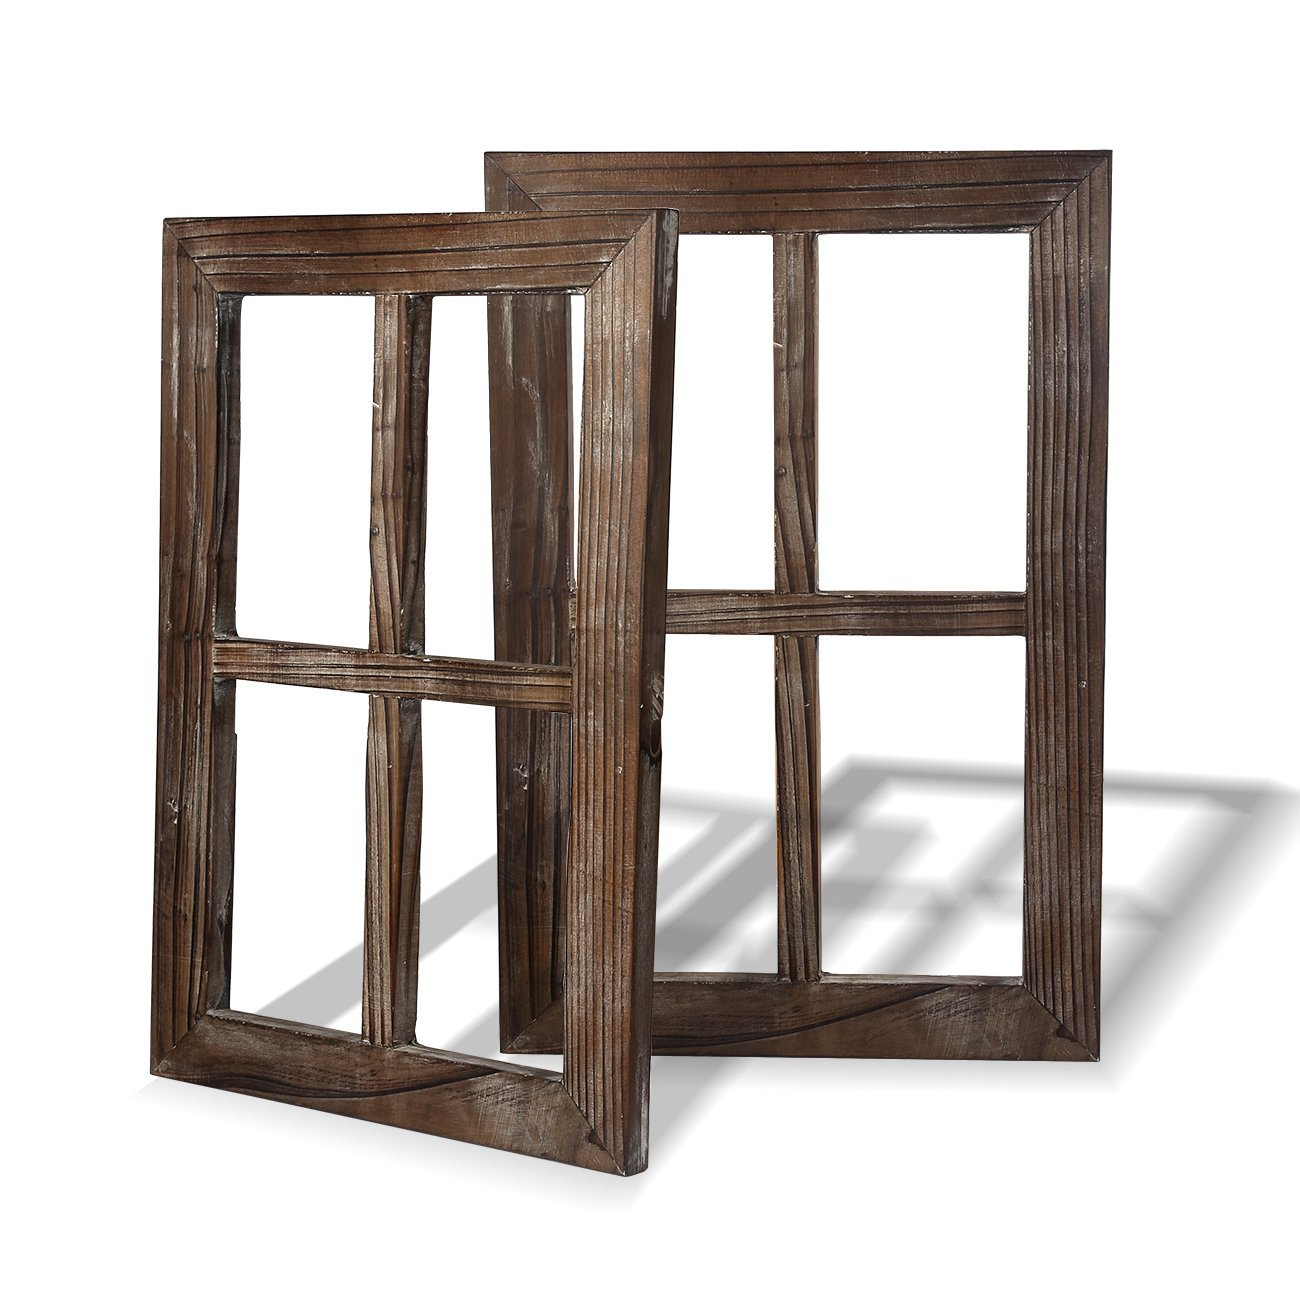 Cade Old Rustic Window Barnwood Frames -Decoration for Home or Outdoor, Not for Pictures (2, 11X15.8 inch)